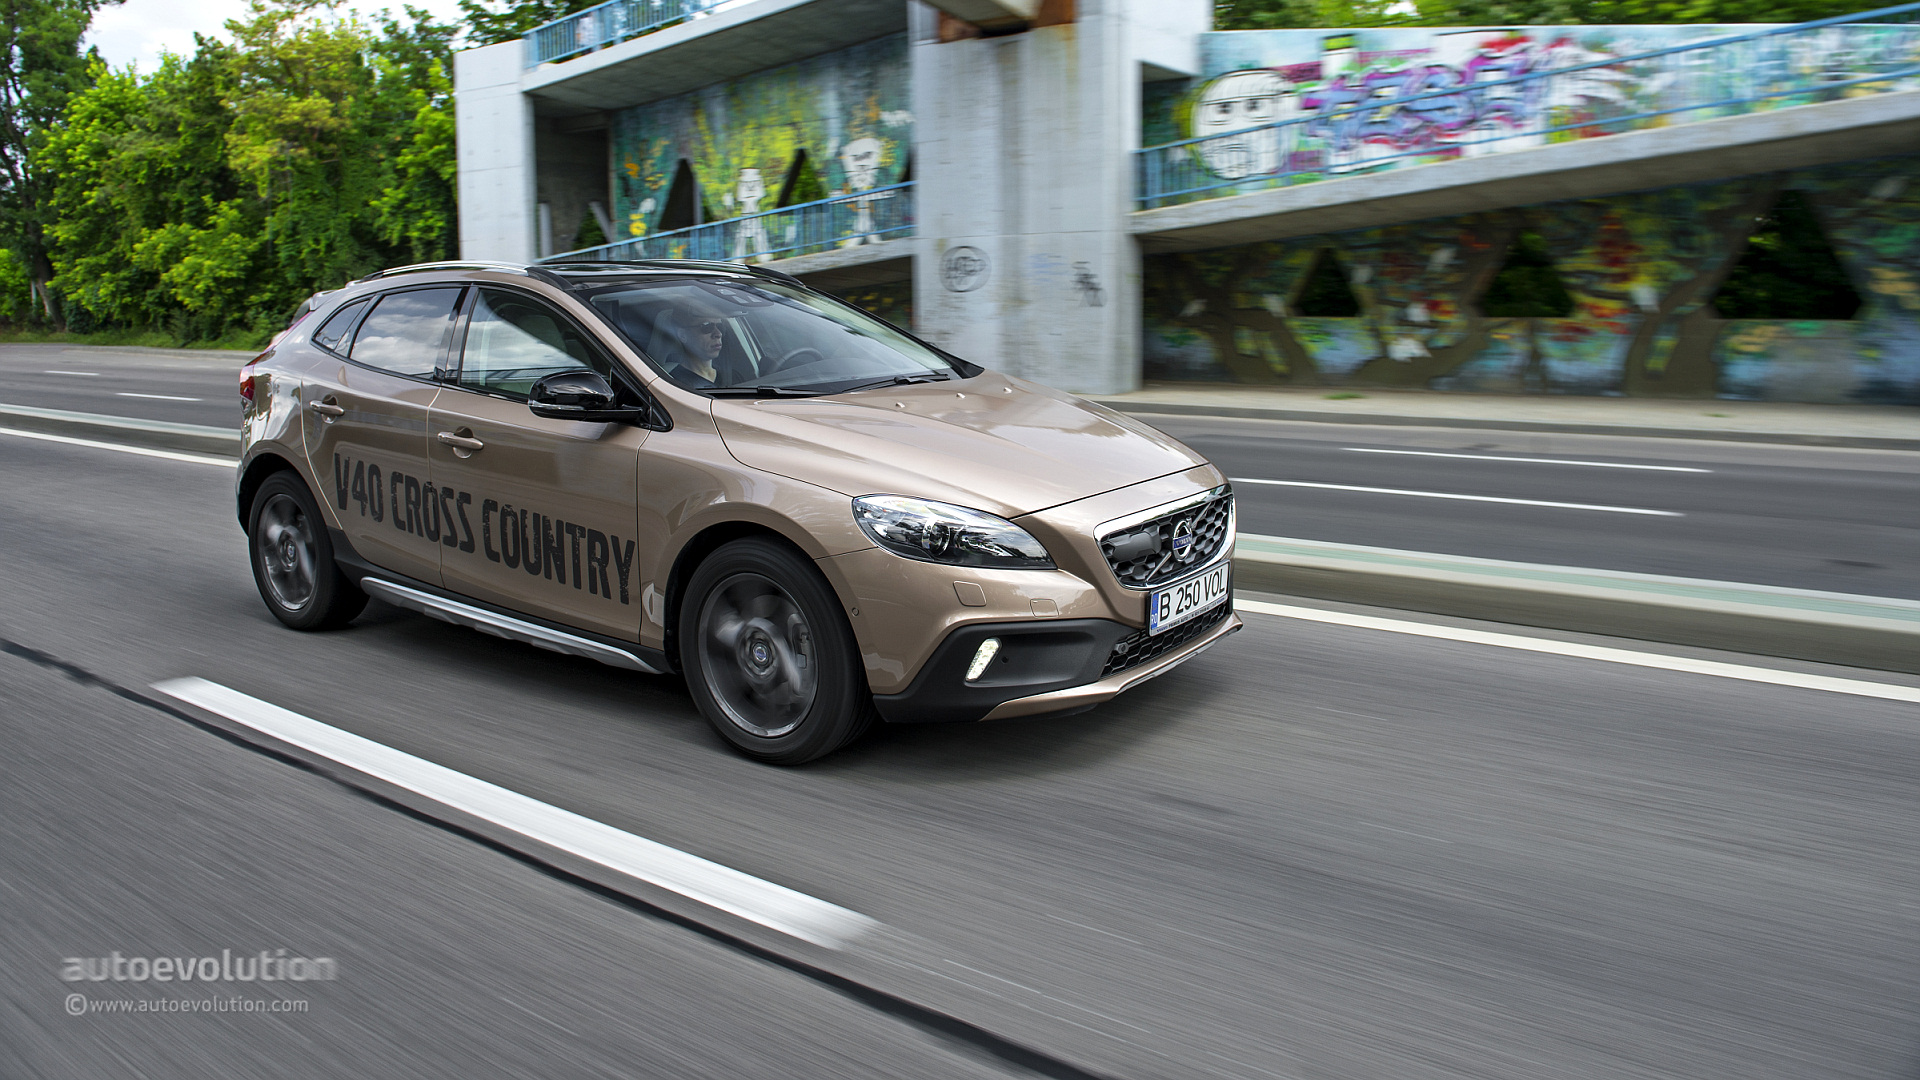 volvo v40 cross country goes on sale in australia. Black Bedroom Furniture Sets. Home Design Ideas